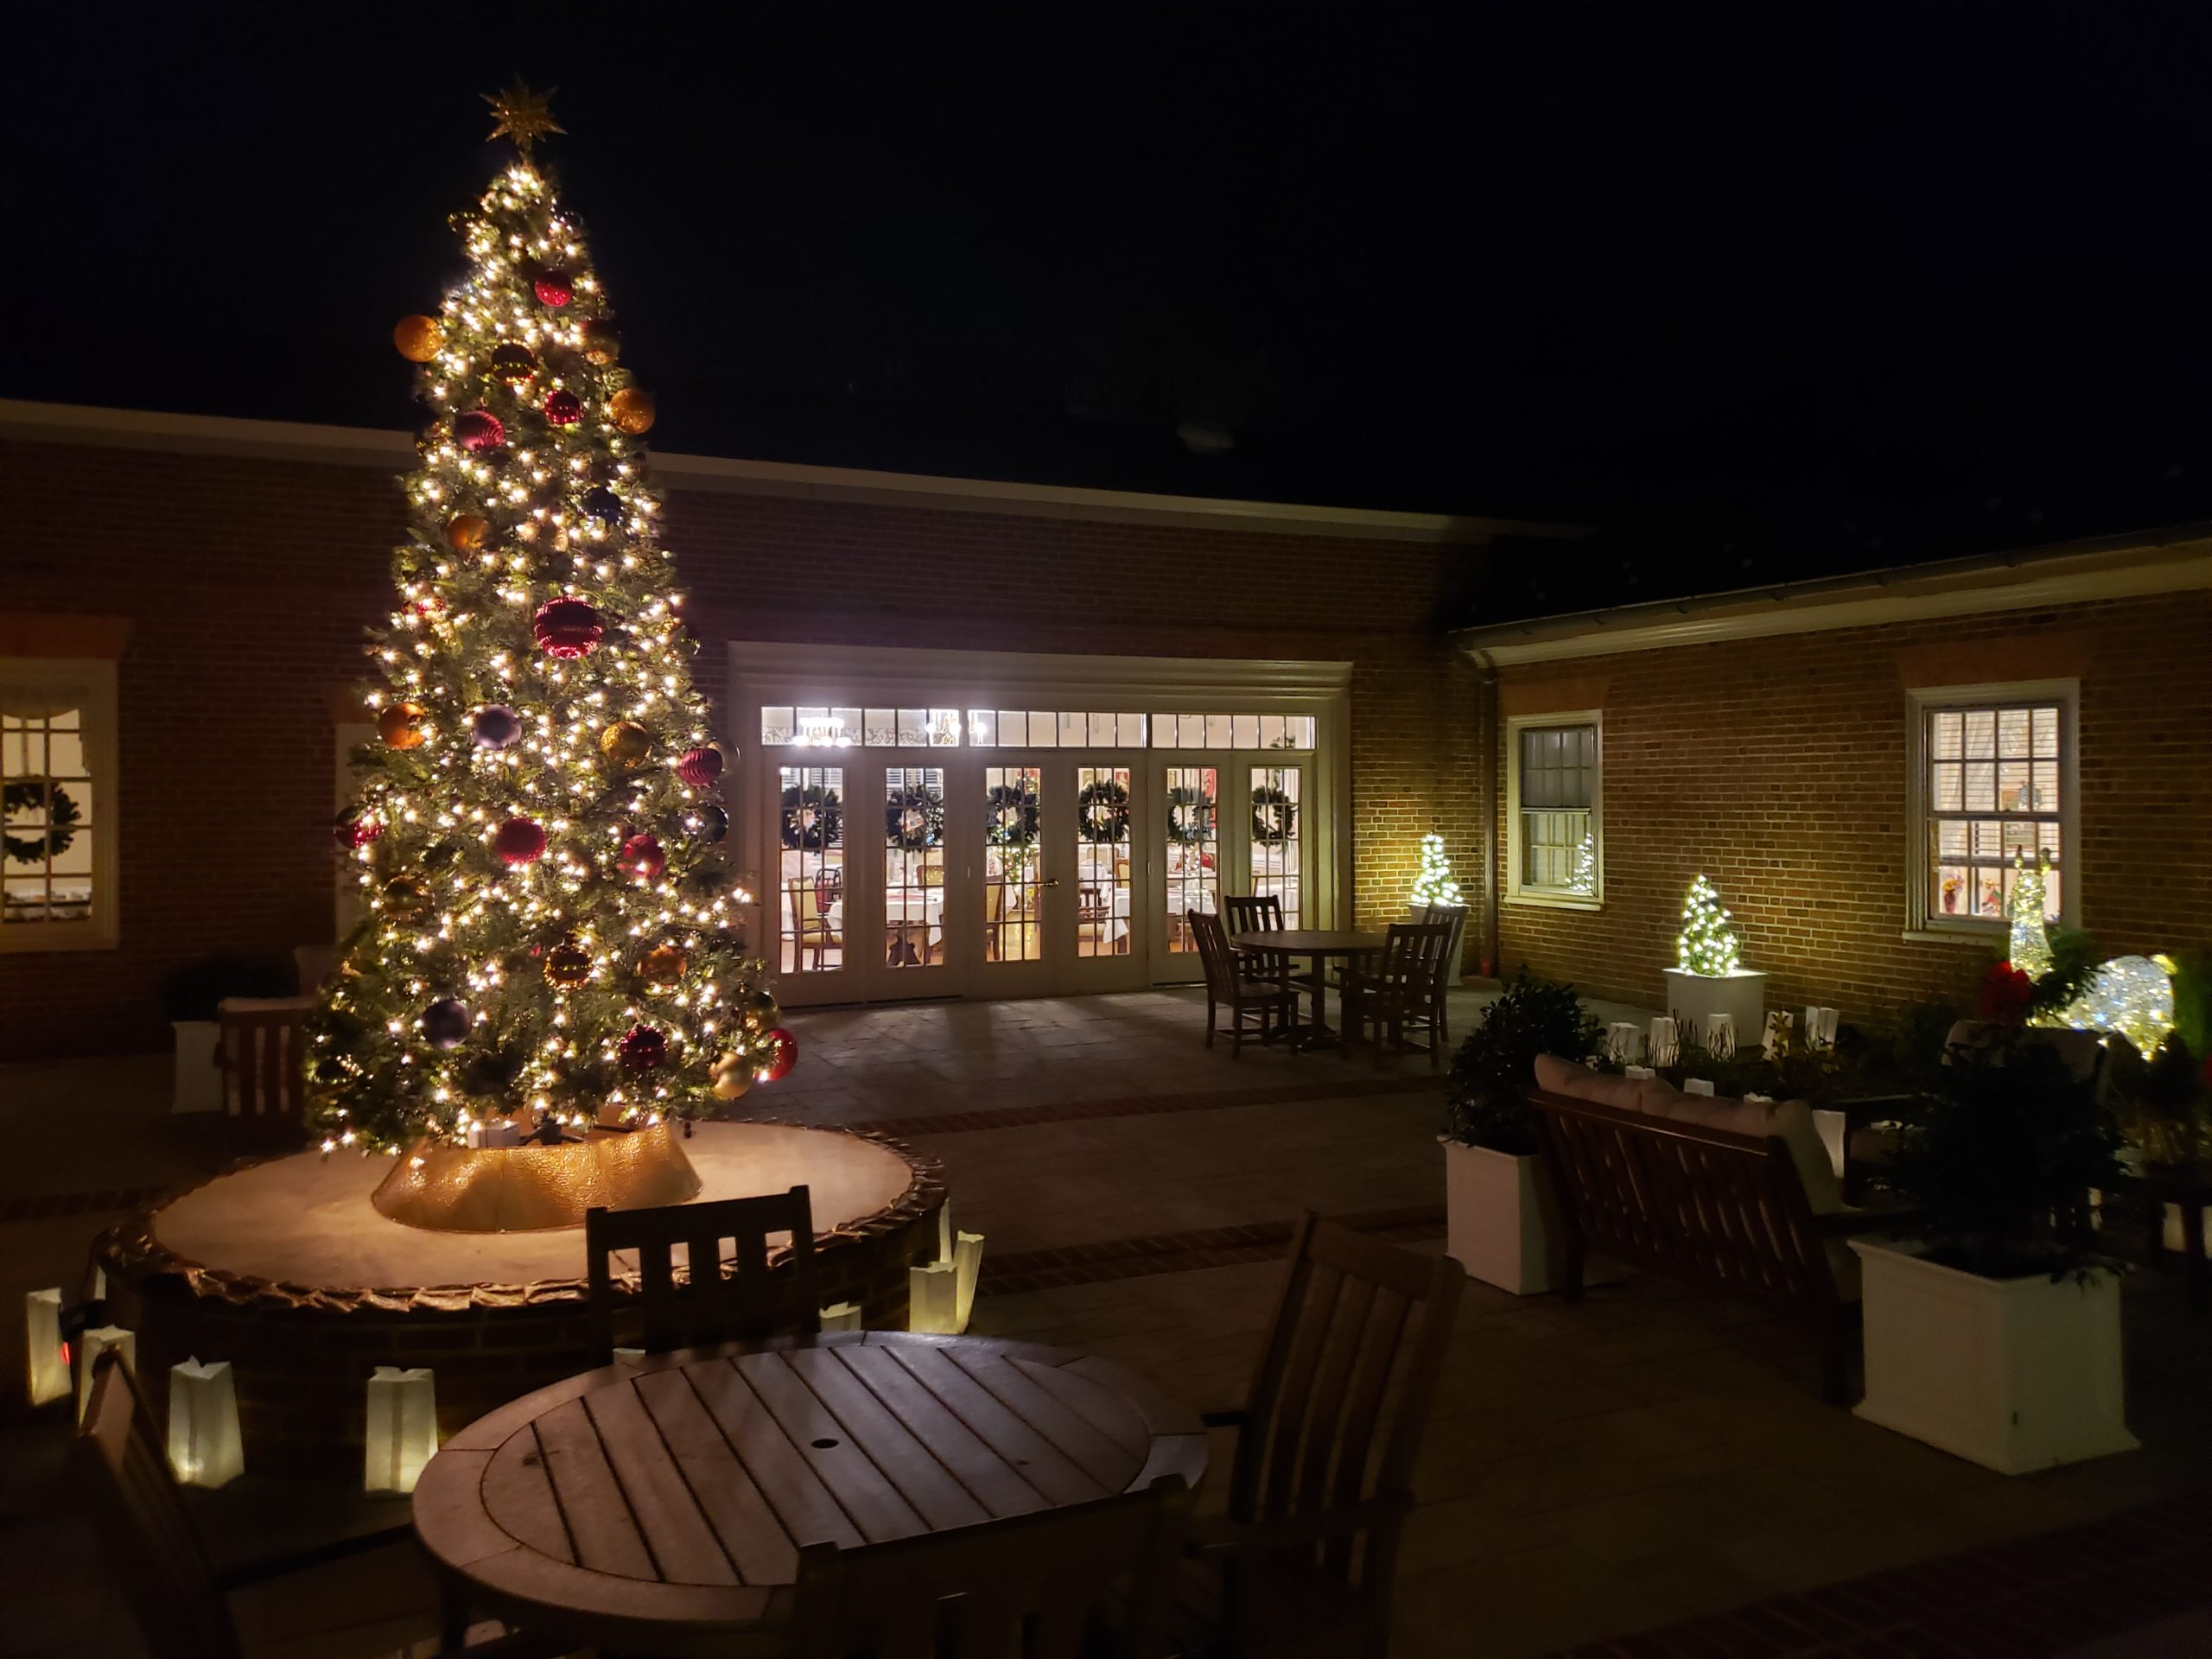 Christmas in the Courtyard